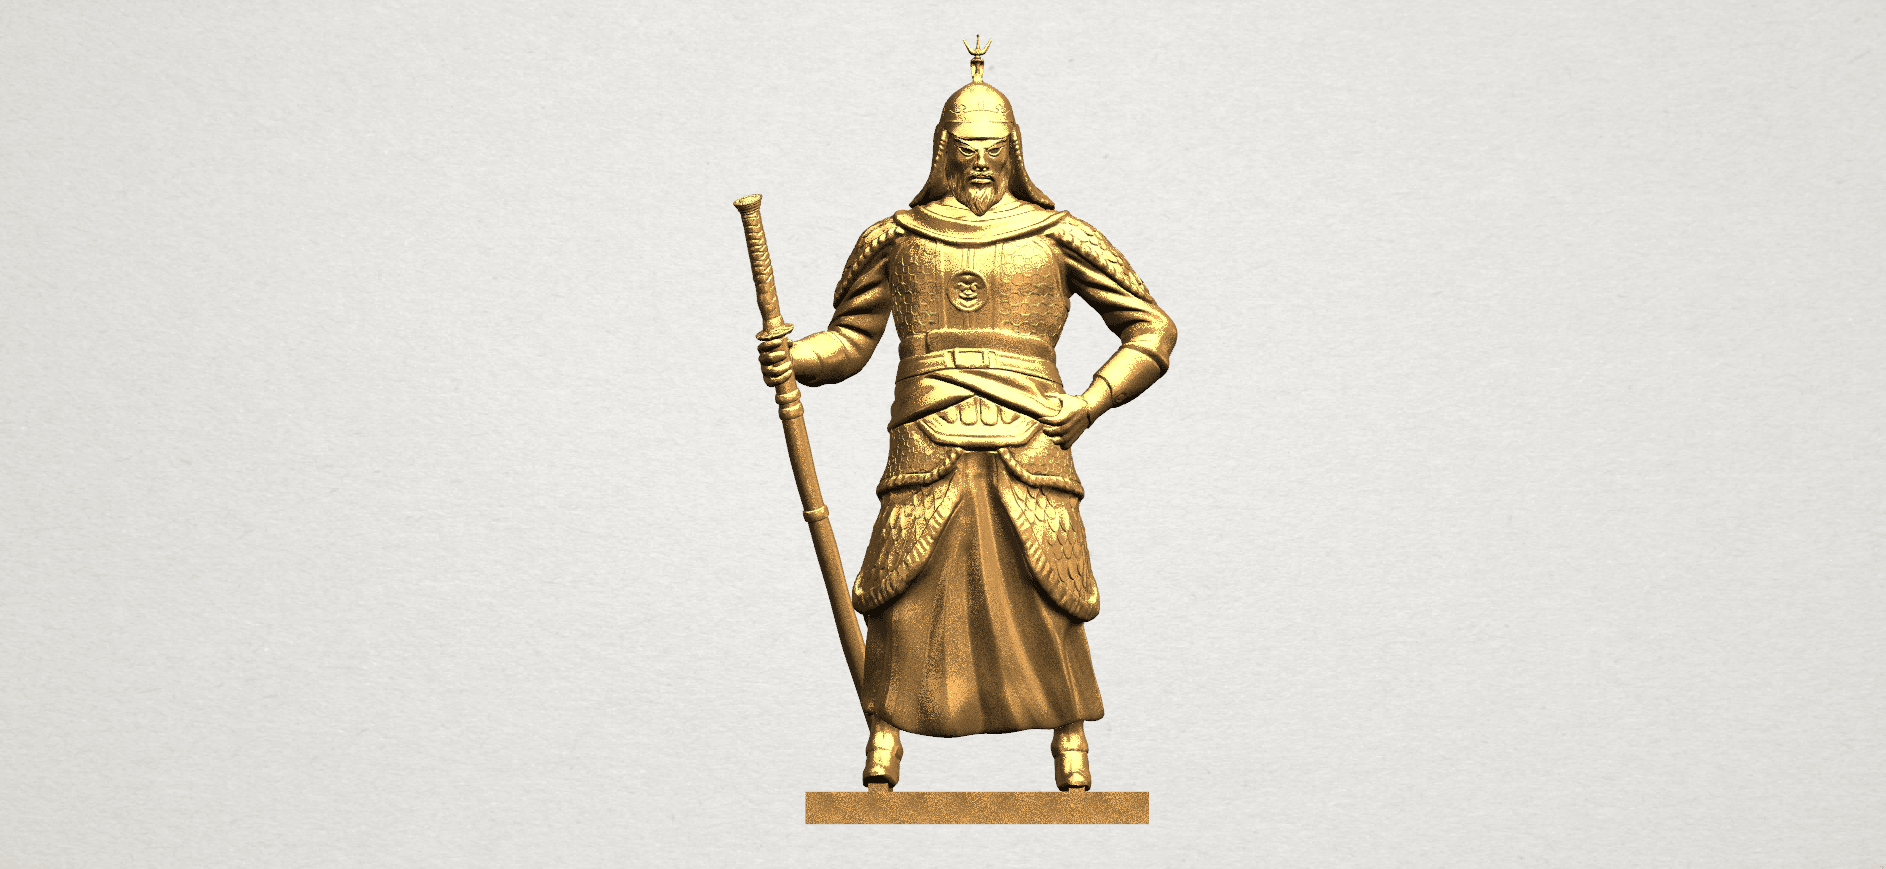 Age of Empire - warrior -C01.png Download free STL file Age of Empire - warrio • 3D print design, GeorgesNikkei